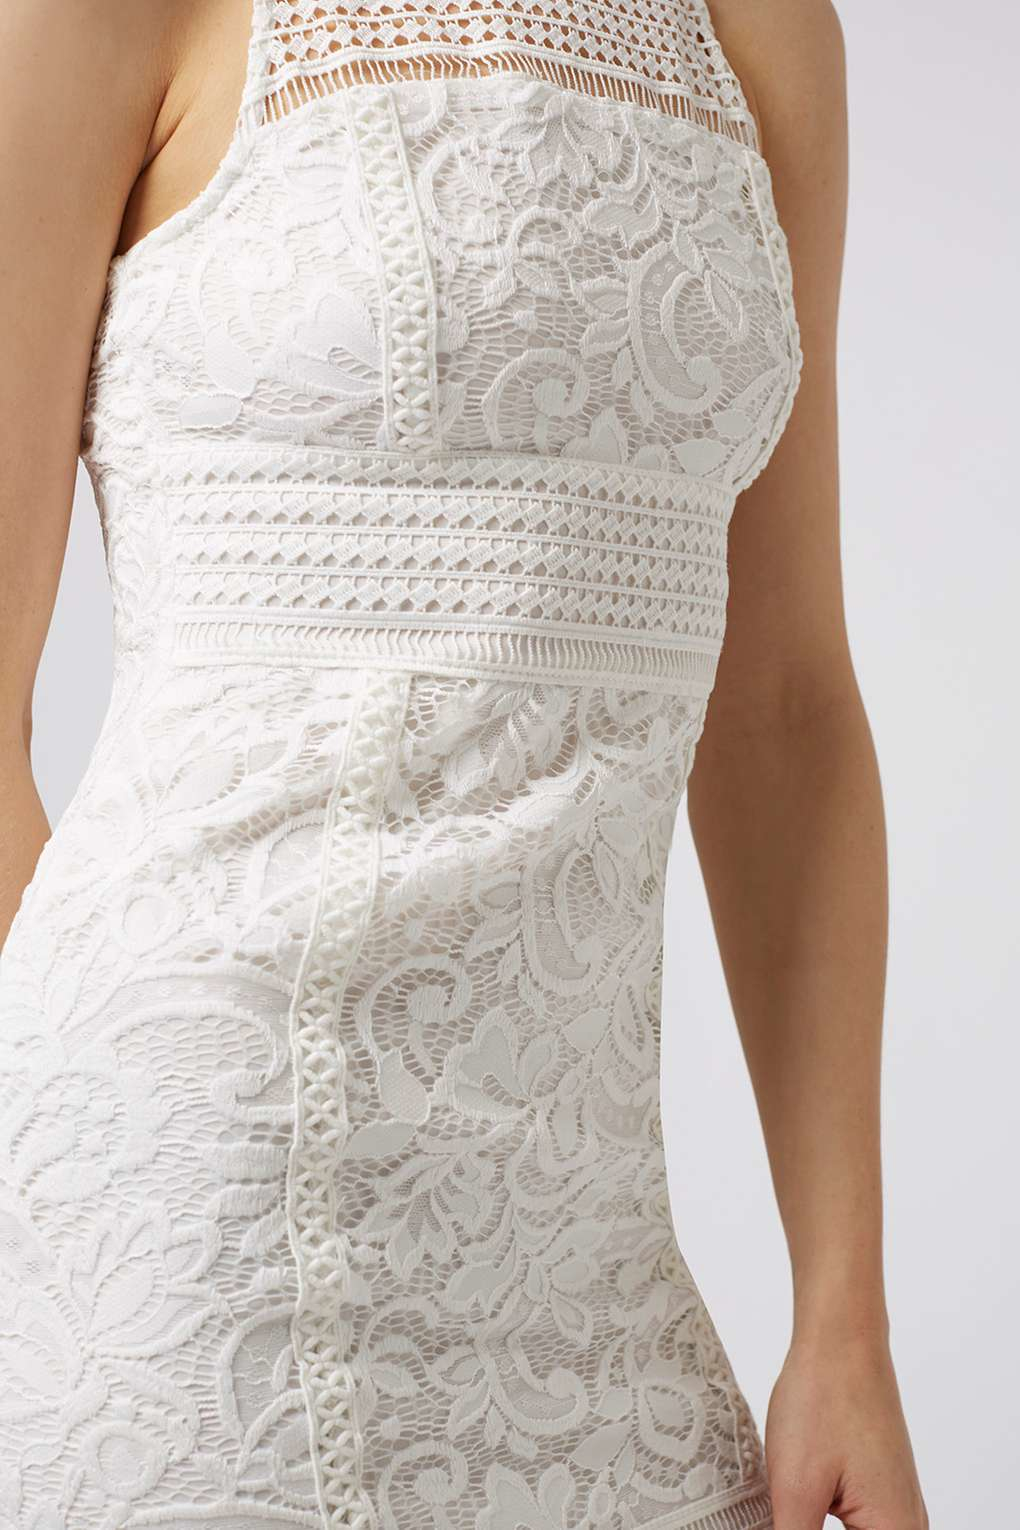 Topshop Petite Floral Lace Bodycon Dress In White Lyst